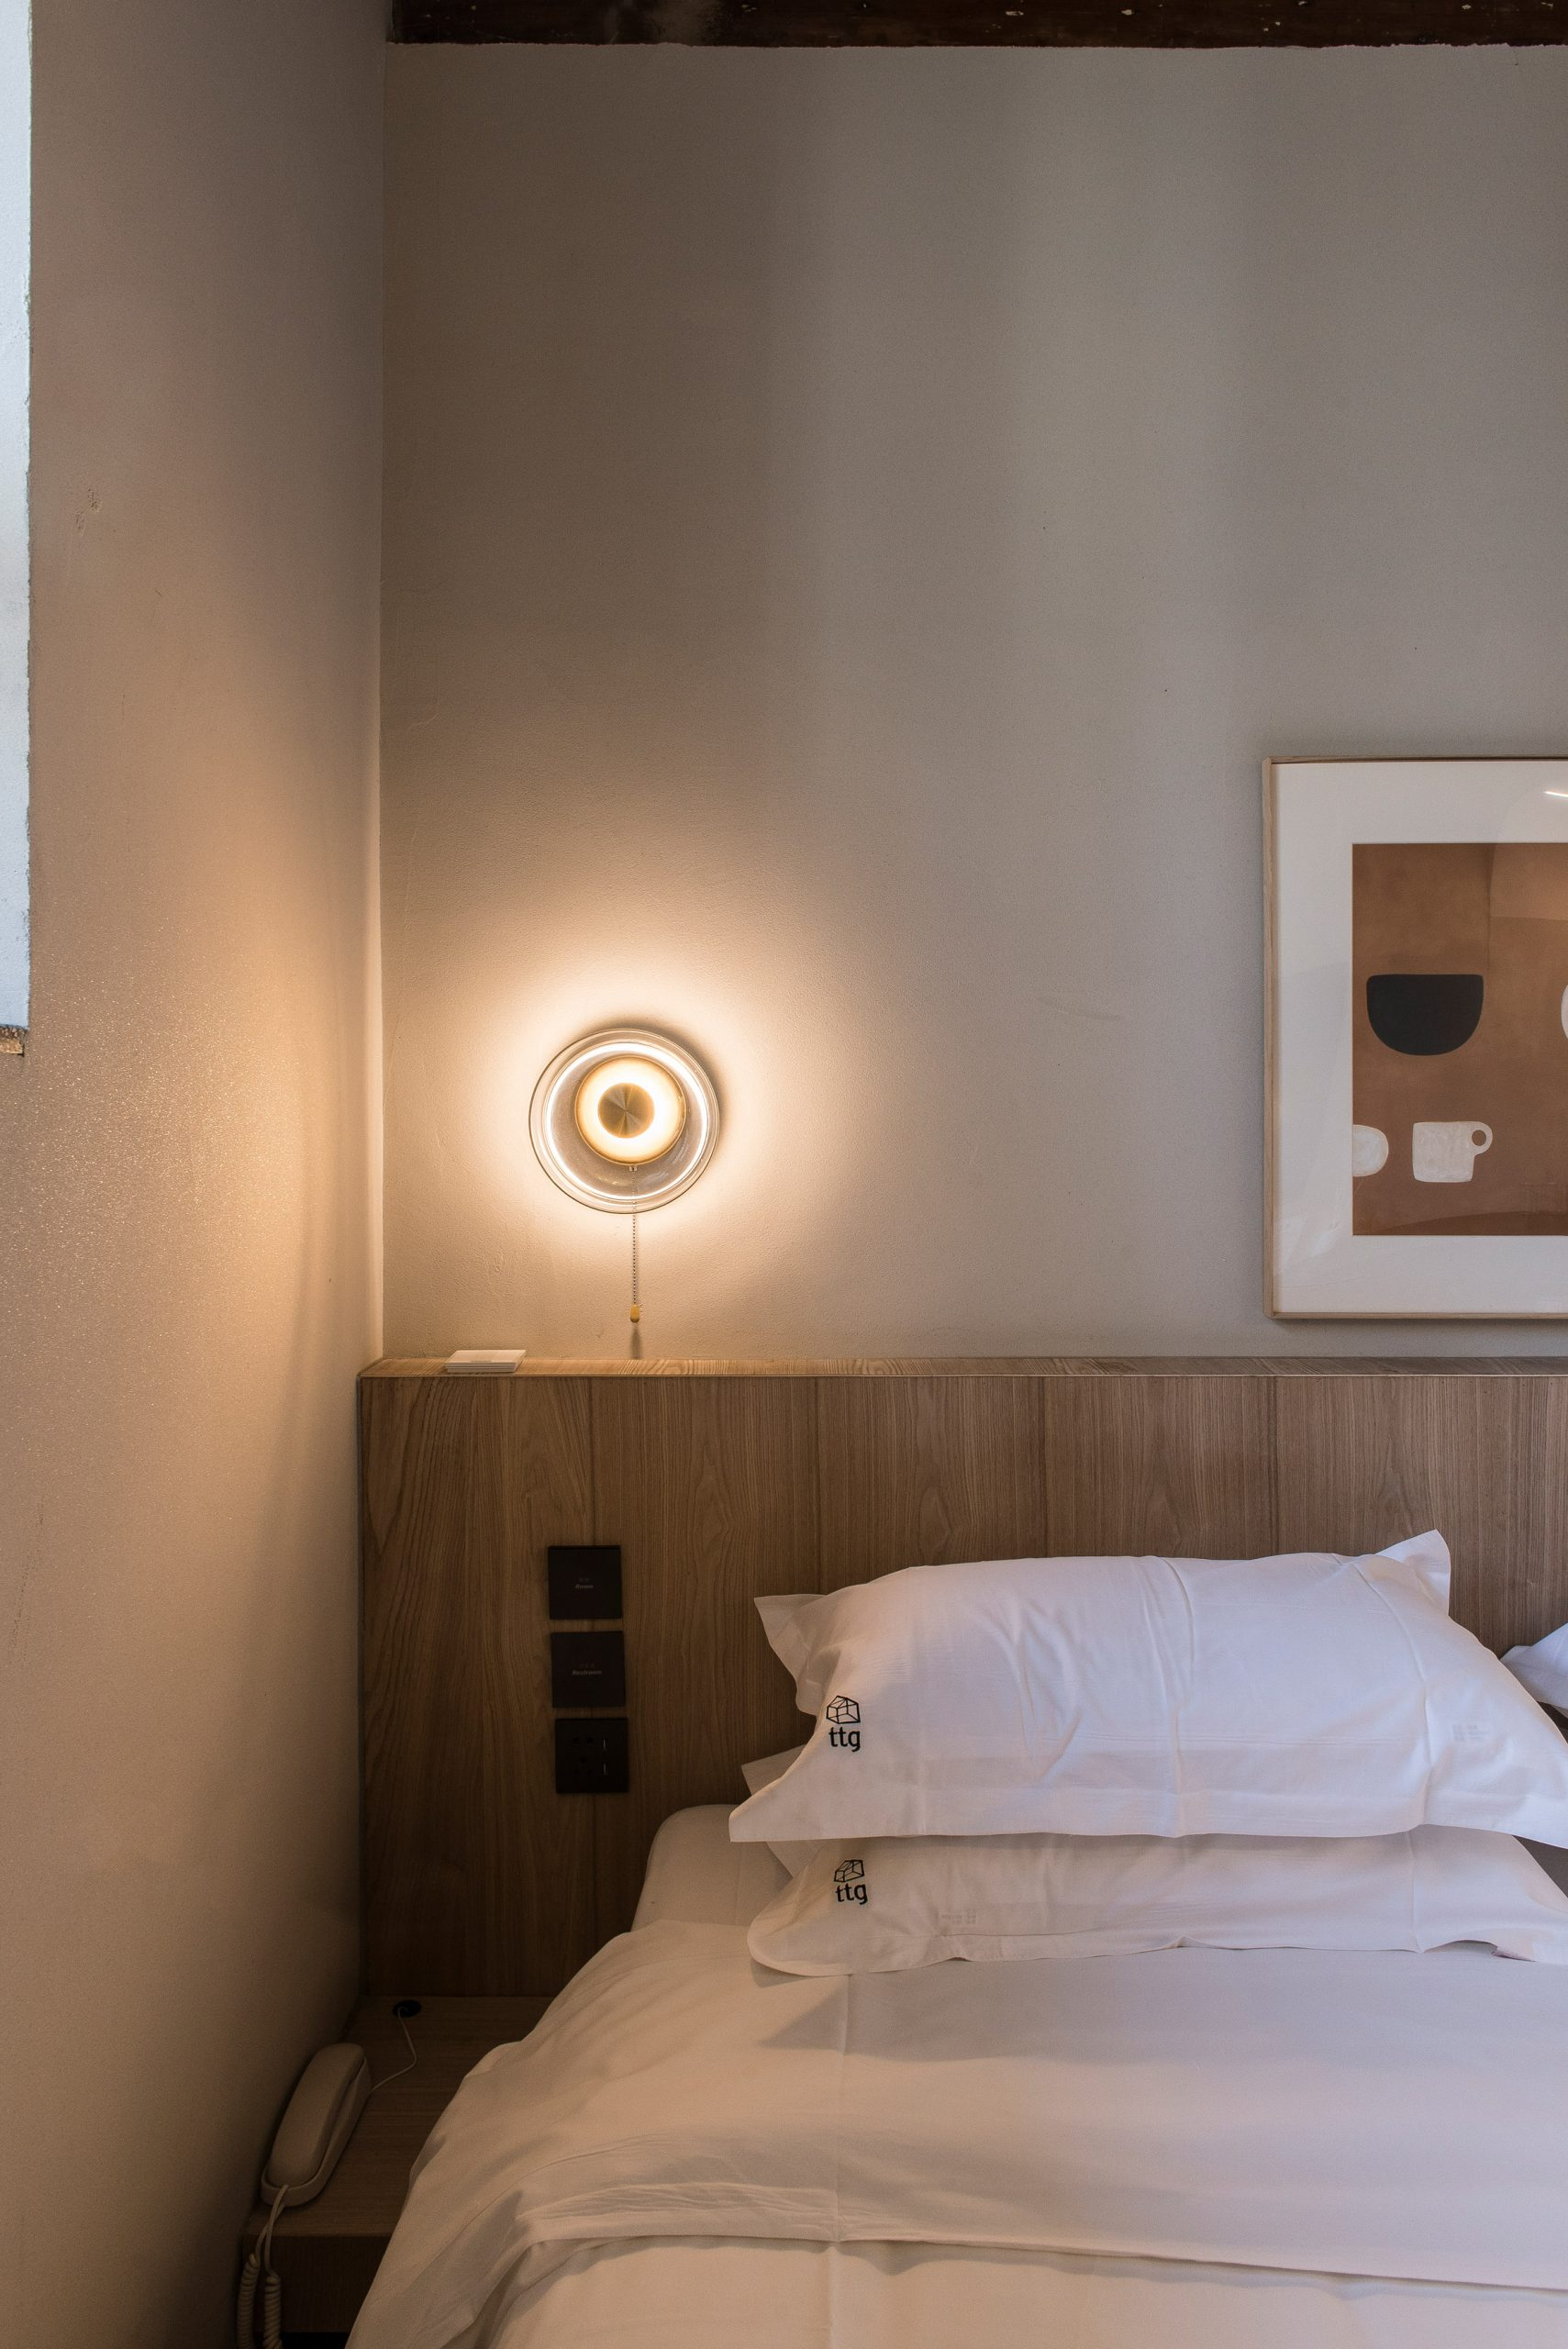 Guest bedroom in renovated hutong hotel by Fon Studio